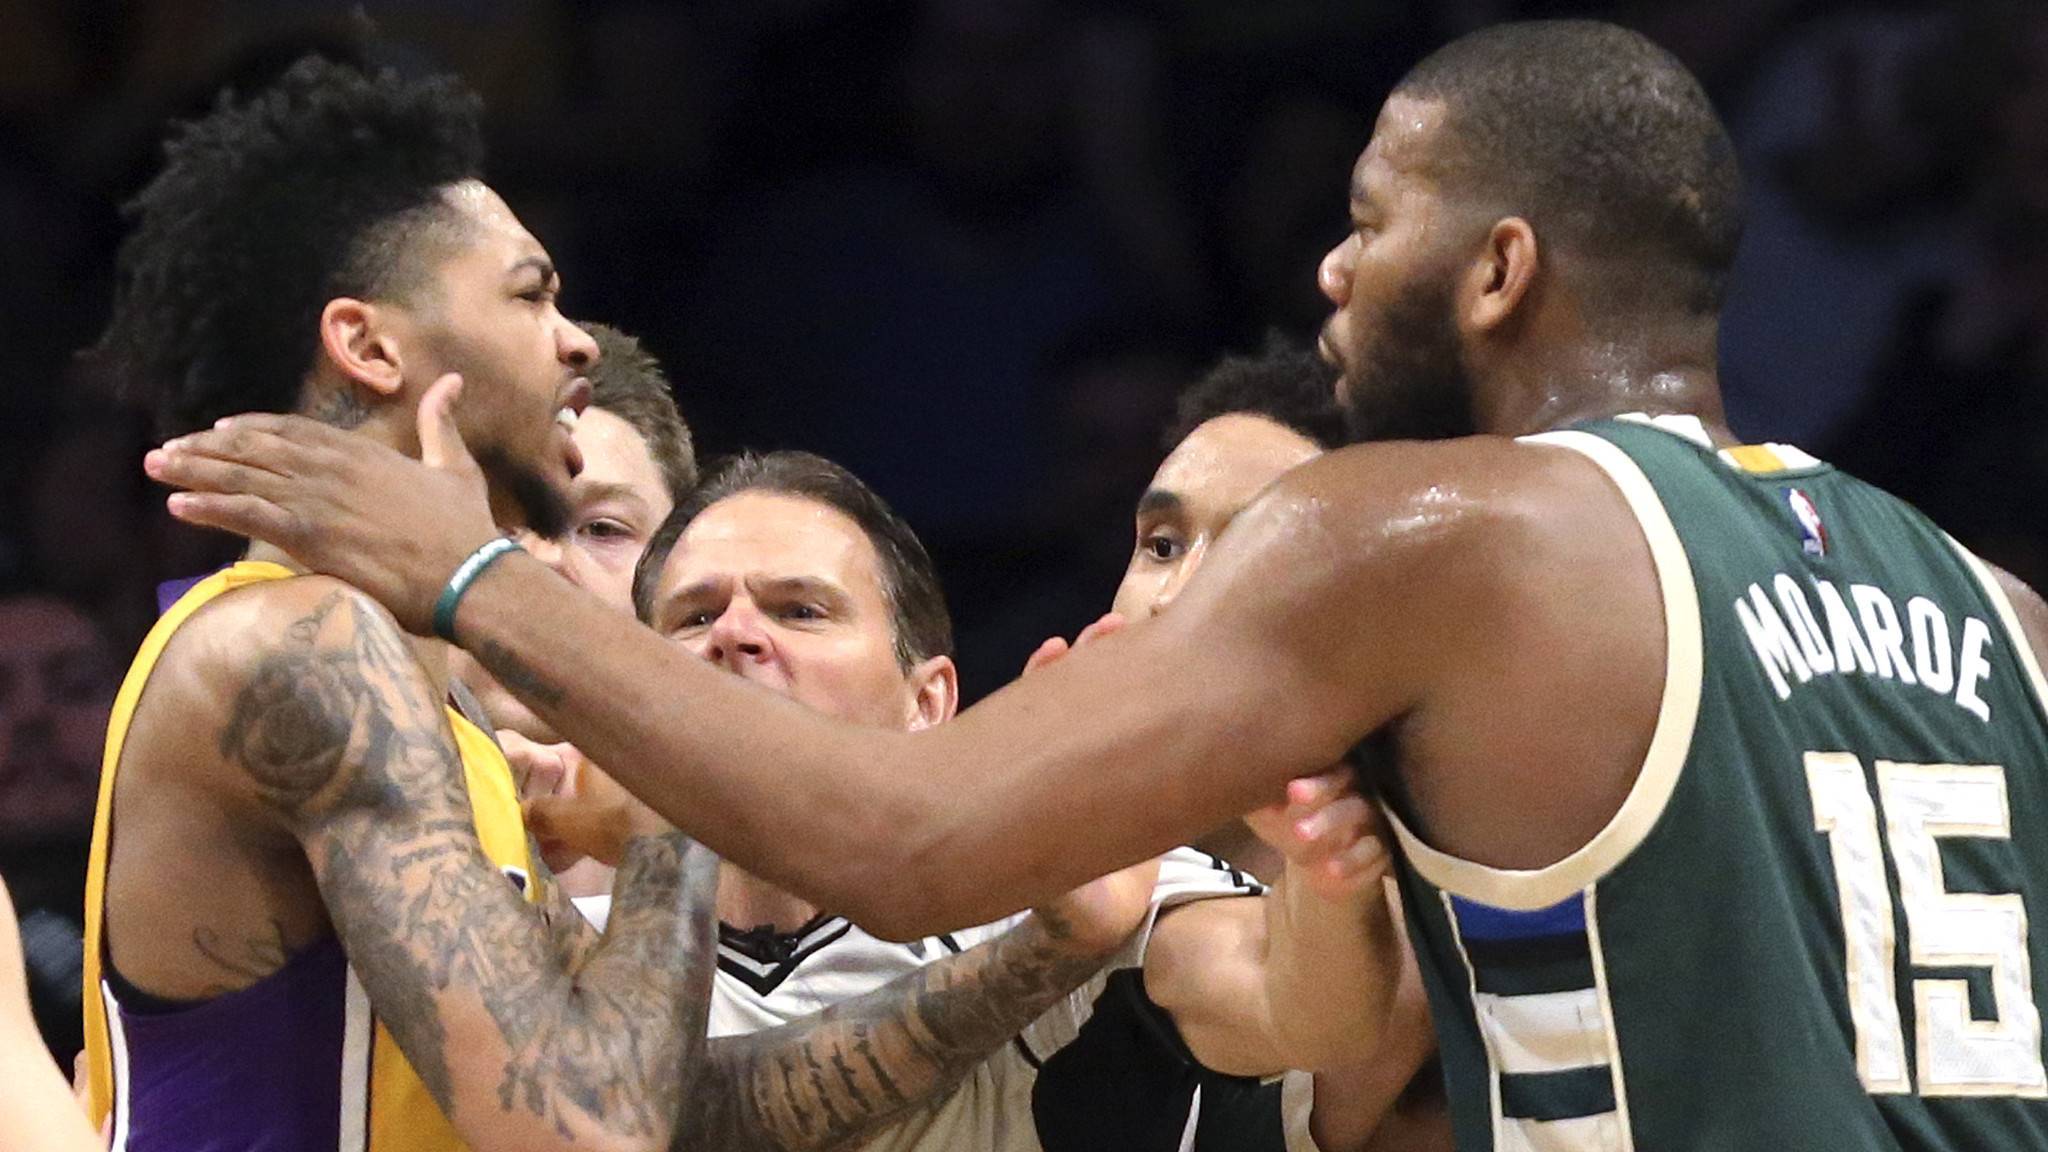 Nick Young, D'Angelo Russell and Greg Monroe fined for Lakers-Bucks  altercation Friday – LA Times